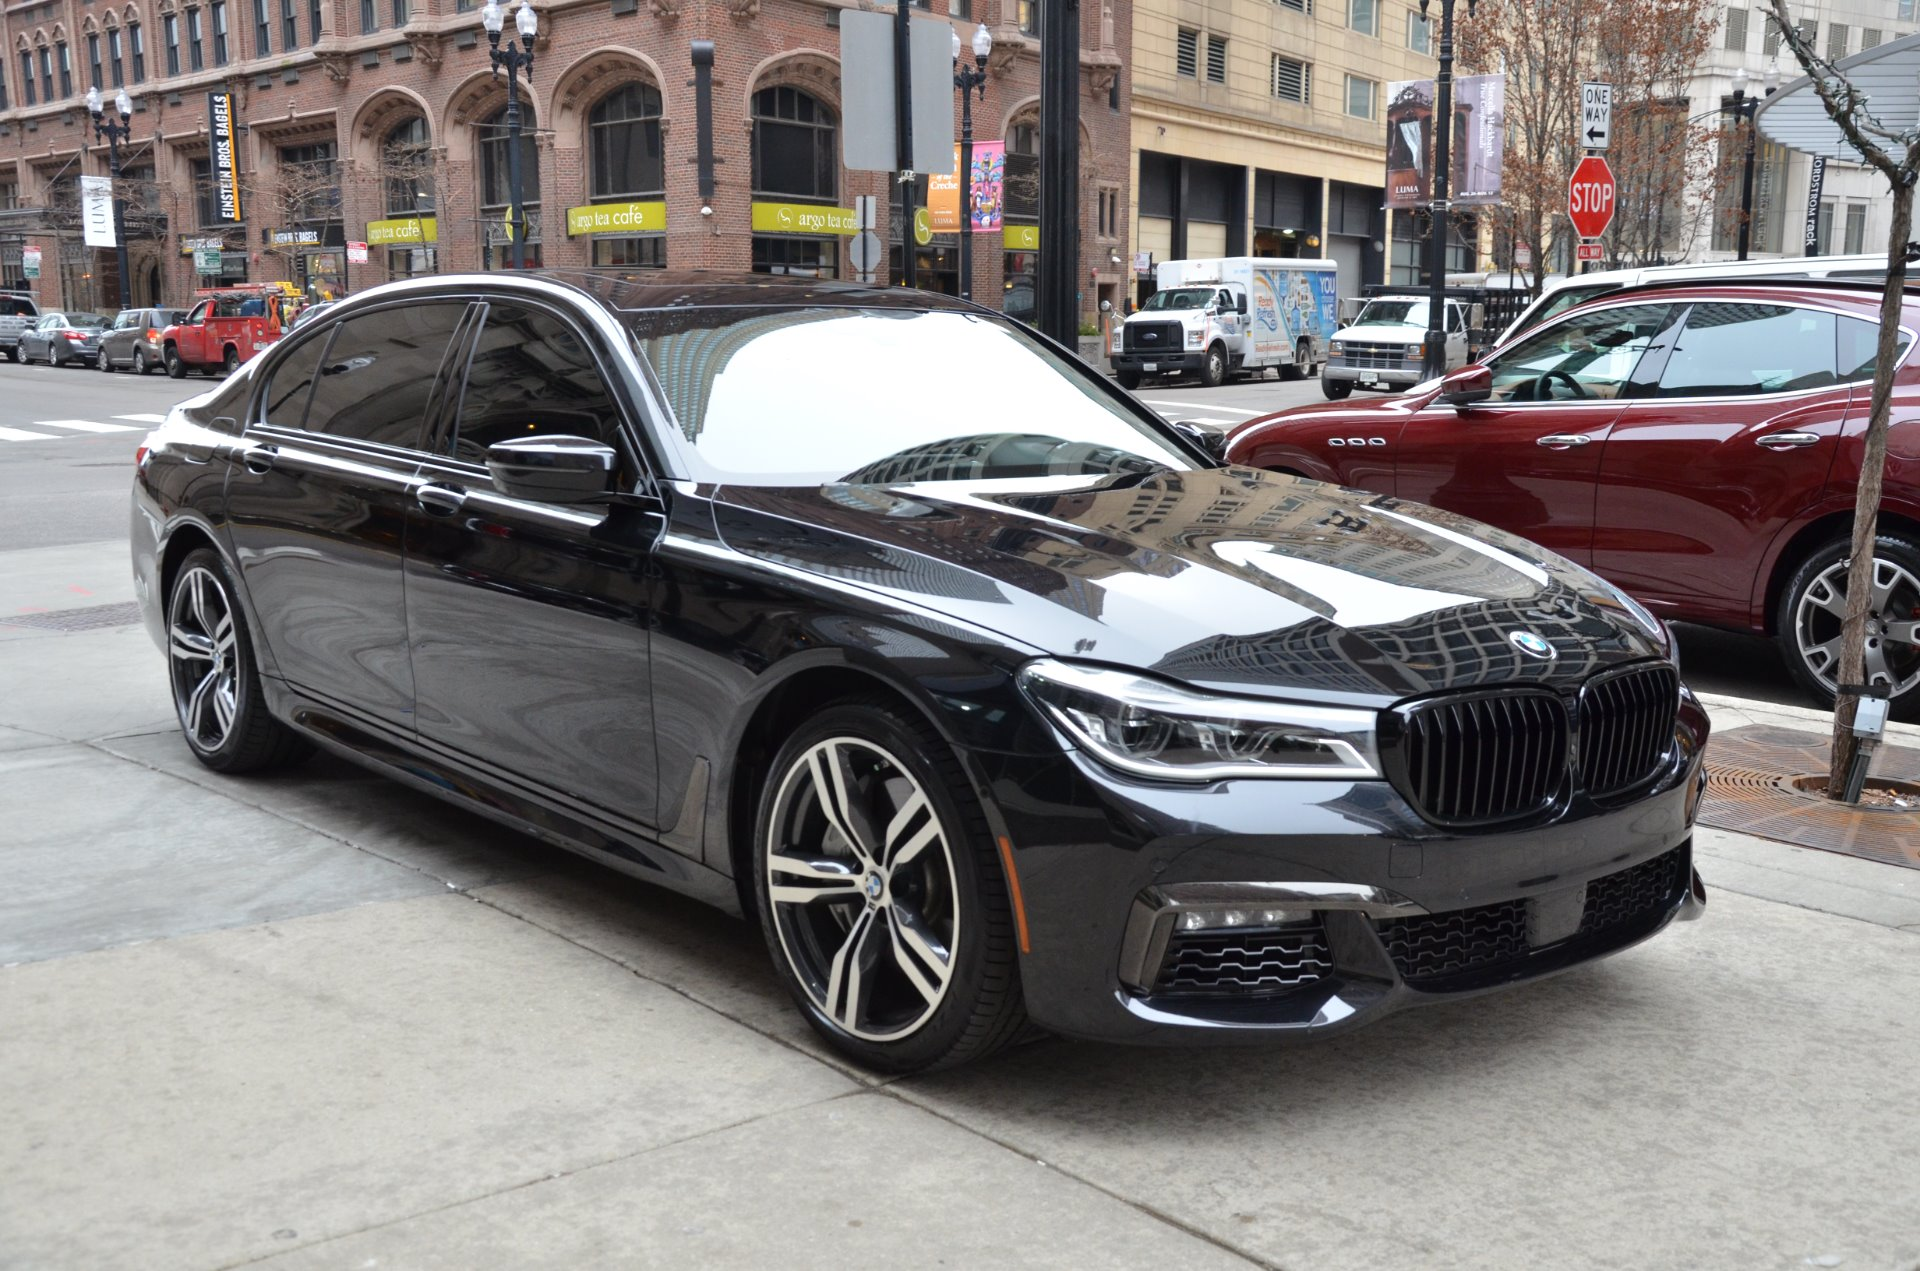 2016 Bmw 7 Series 750i Xdrive Stock B863a For Sale Near